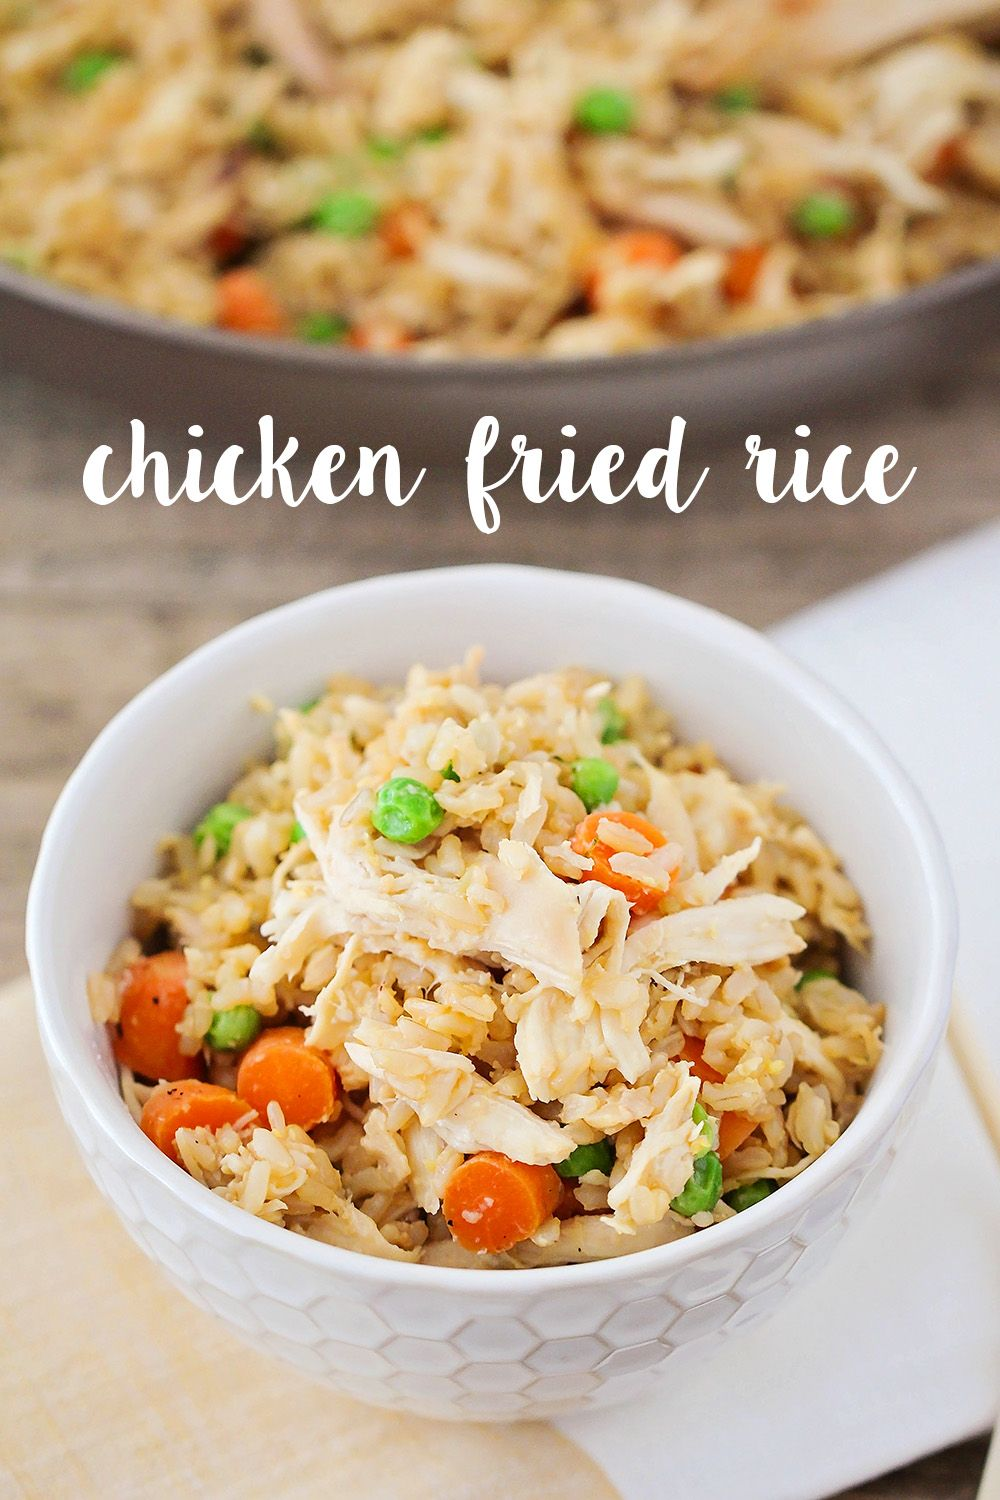 Chicken fried rice fried rice tasty and rice chicken fried rice rice recipeschicken recipeseasy ccuart Choice Image